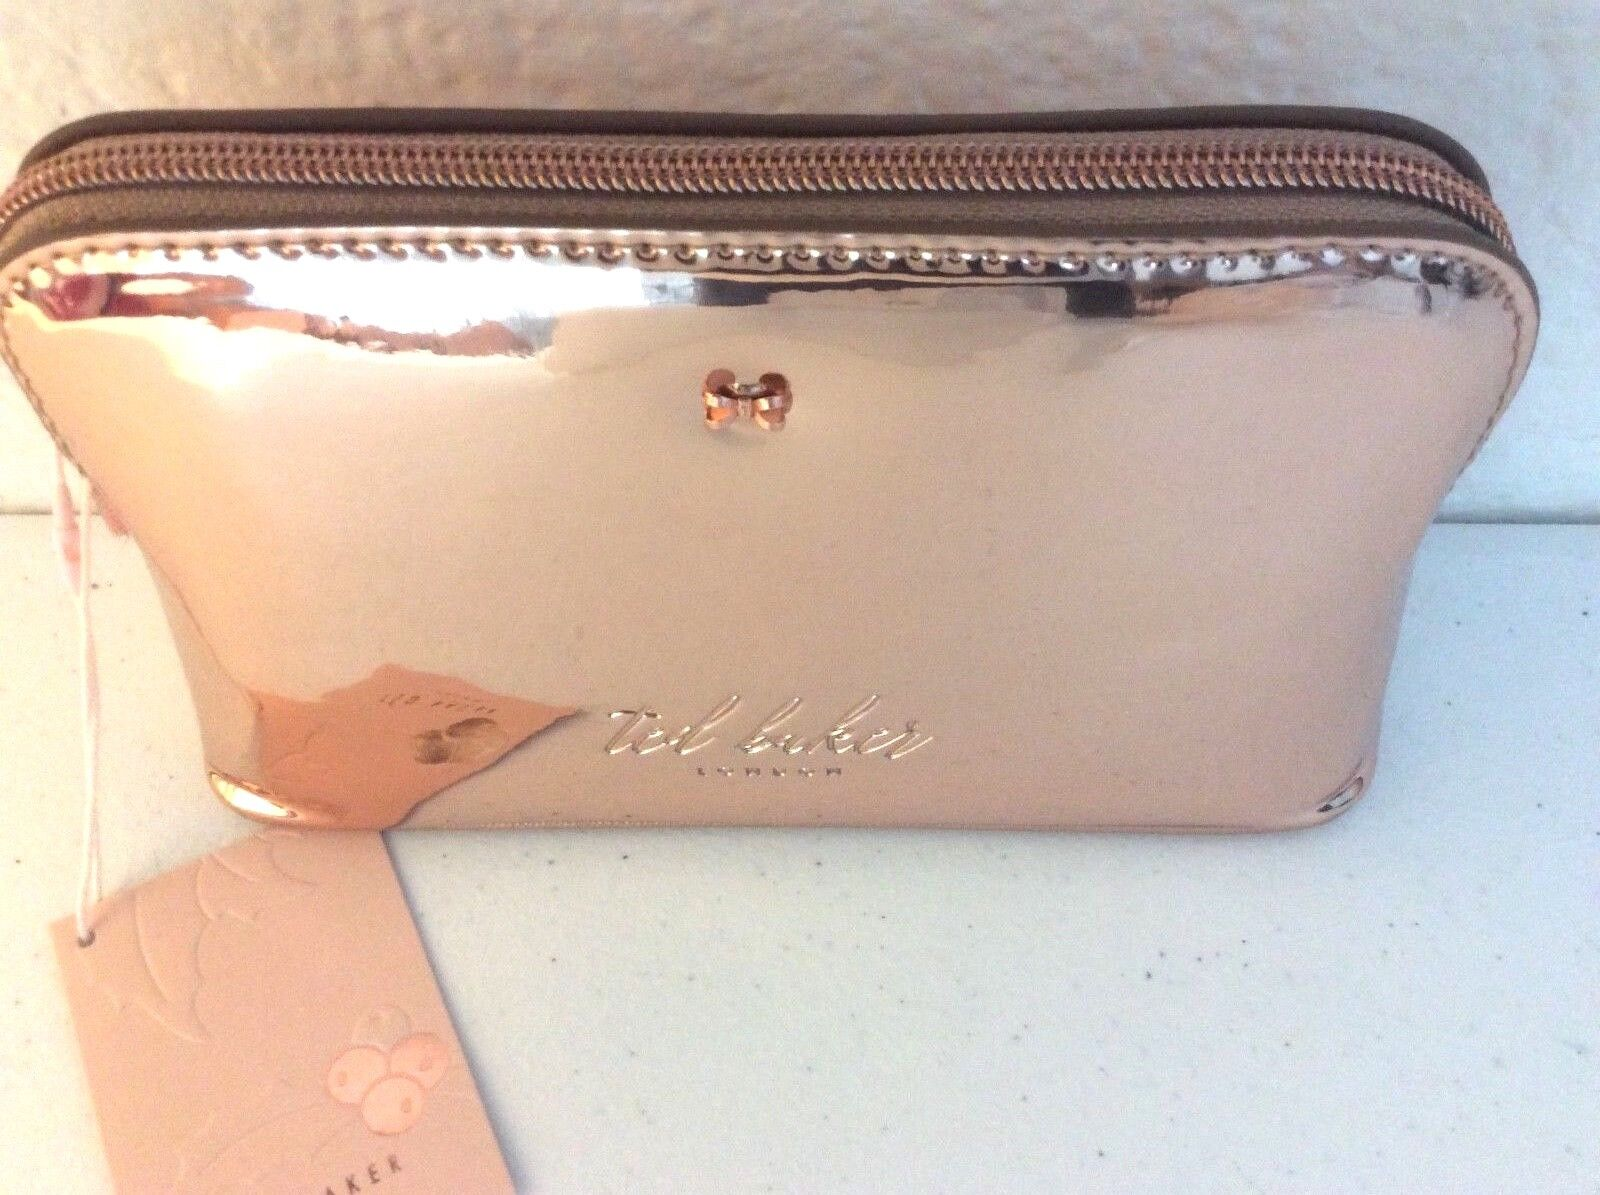 e06554efd ... NWT Ted Baker London Lindsay Mirrored Make-Up Cosmetics Wash Bag Rose  Gold фото